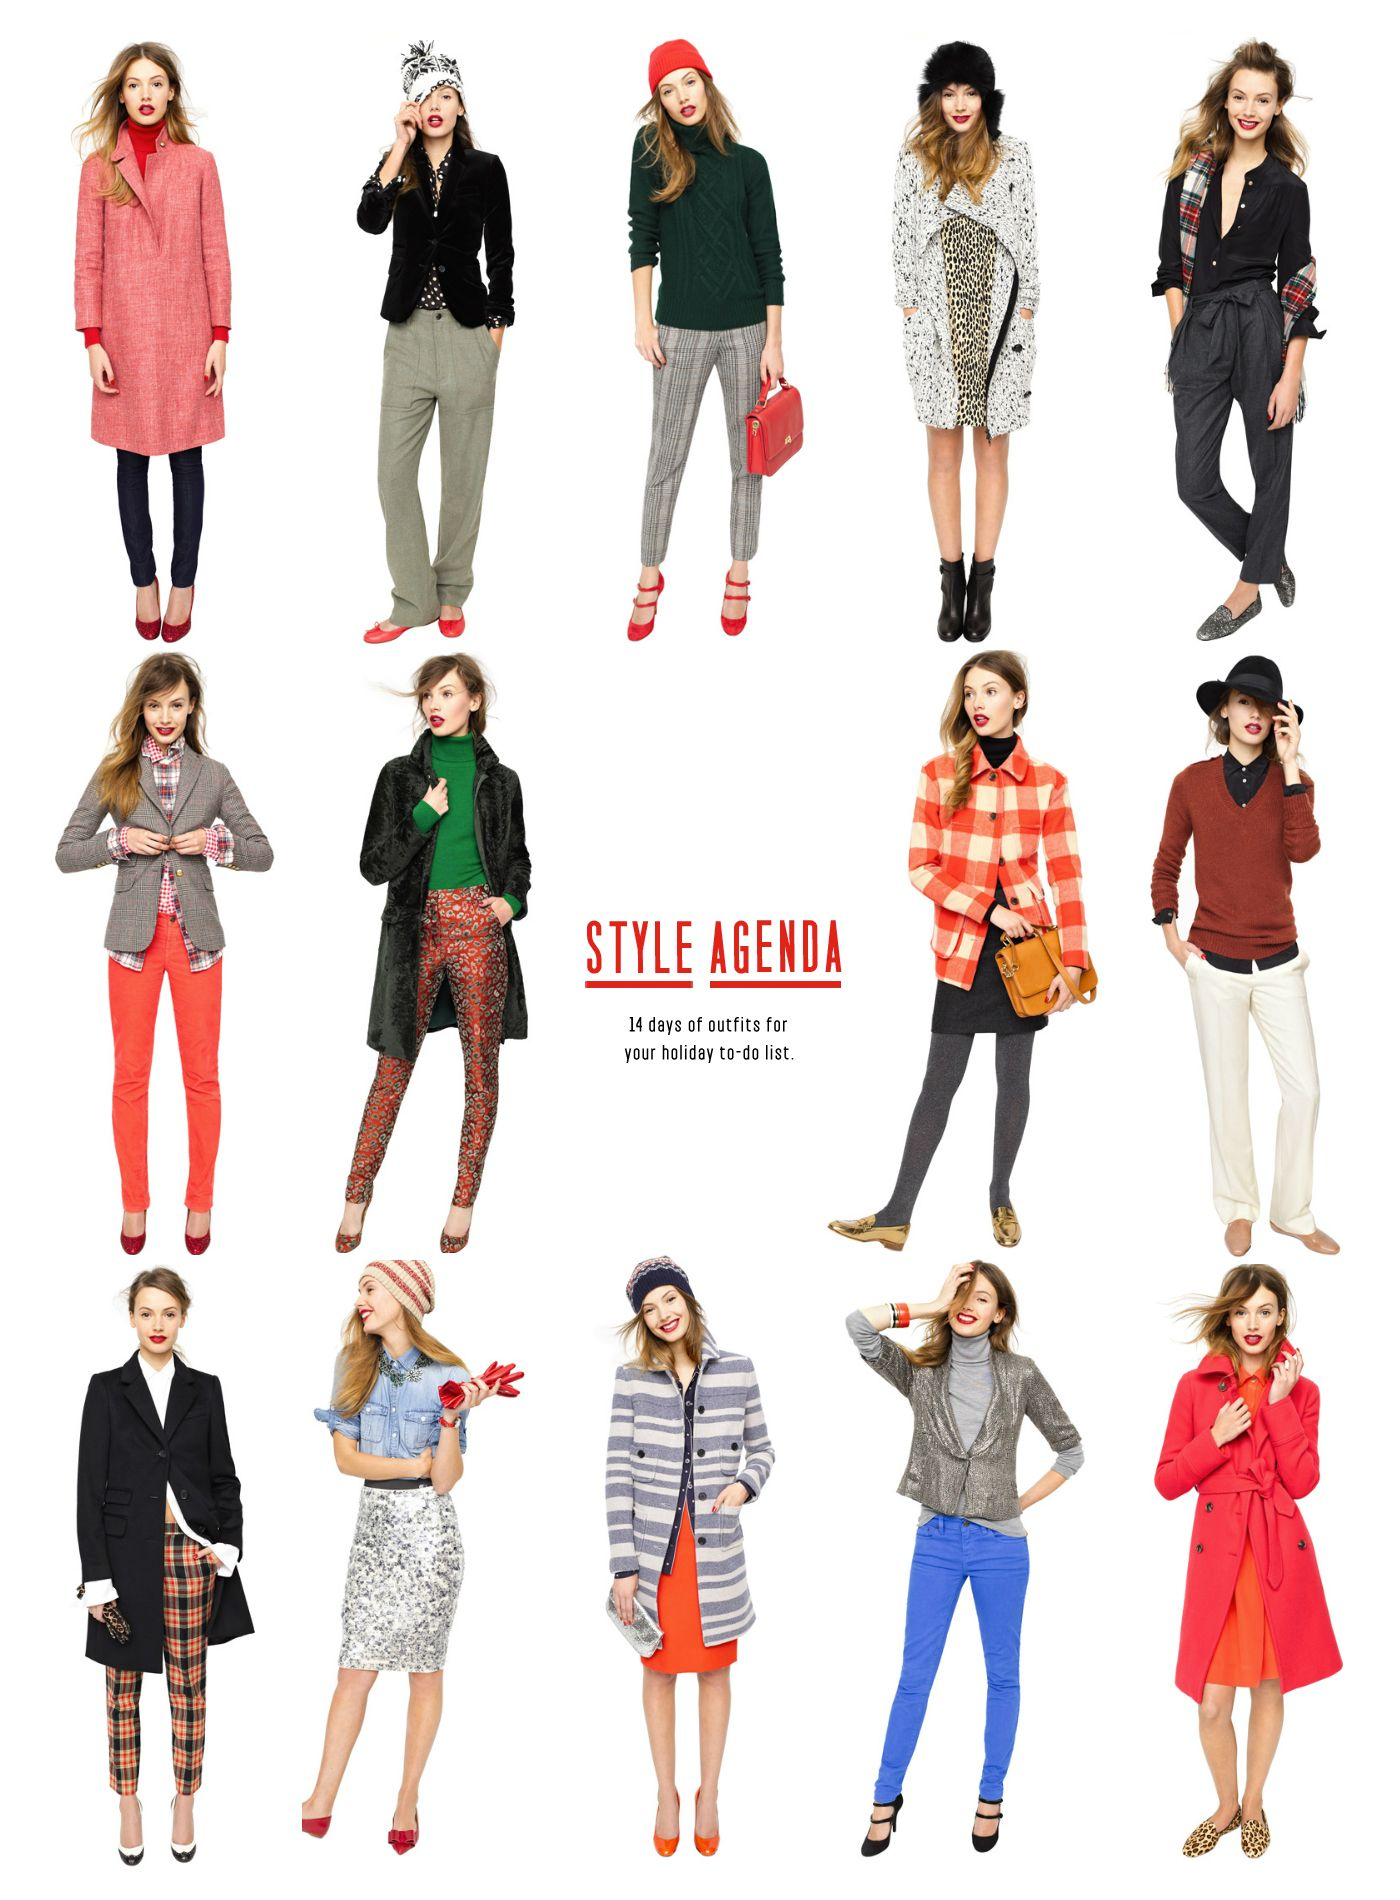 9351ebb900 style agenda - j.crew sweaters, coats etc. how to cute AND warm ...